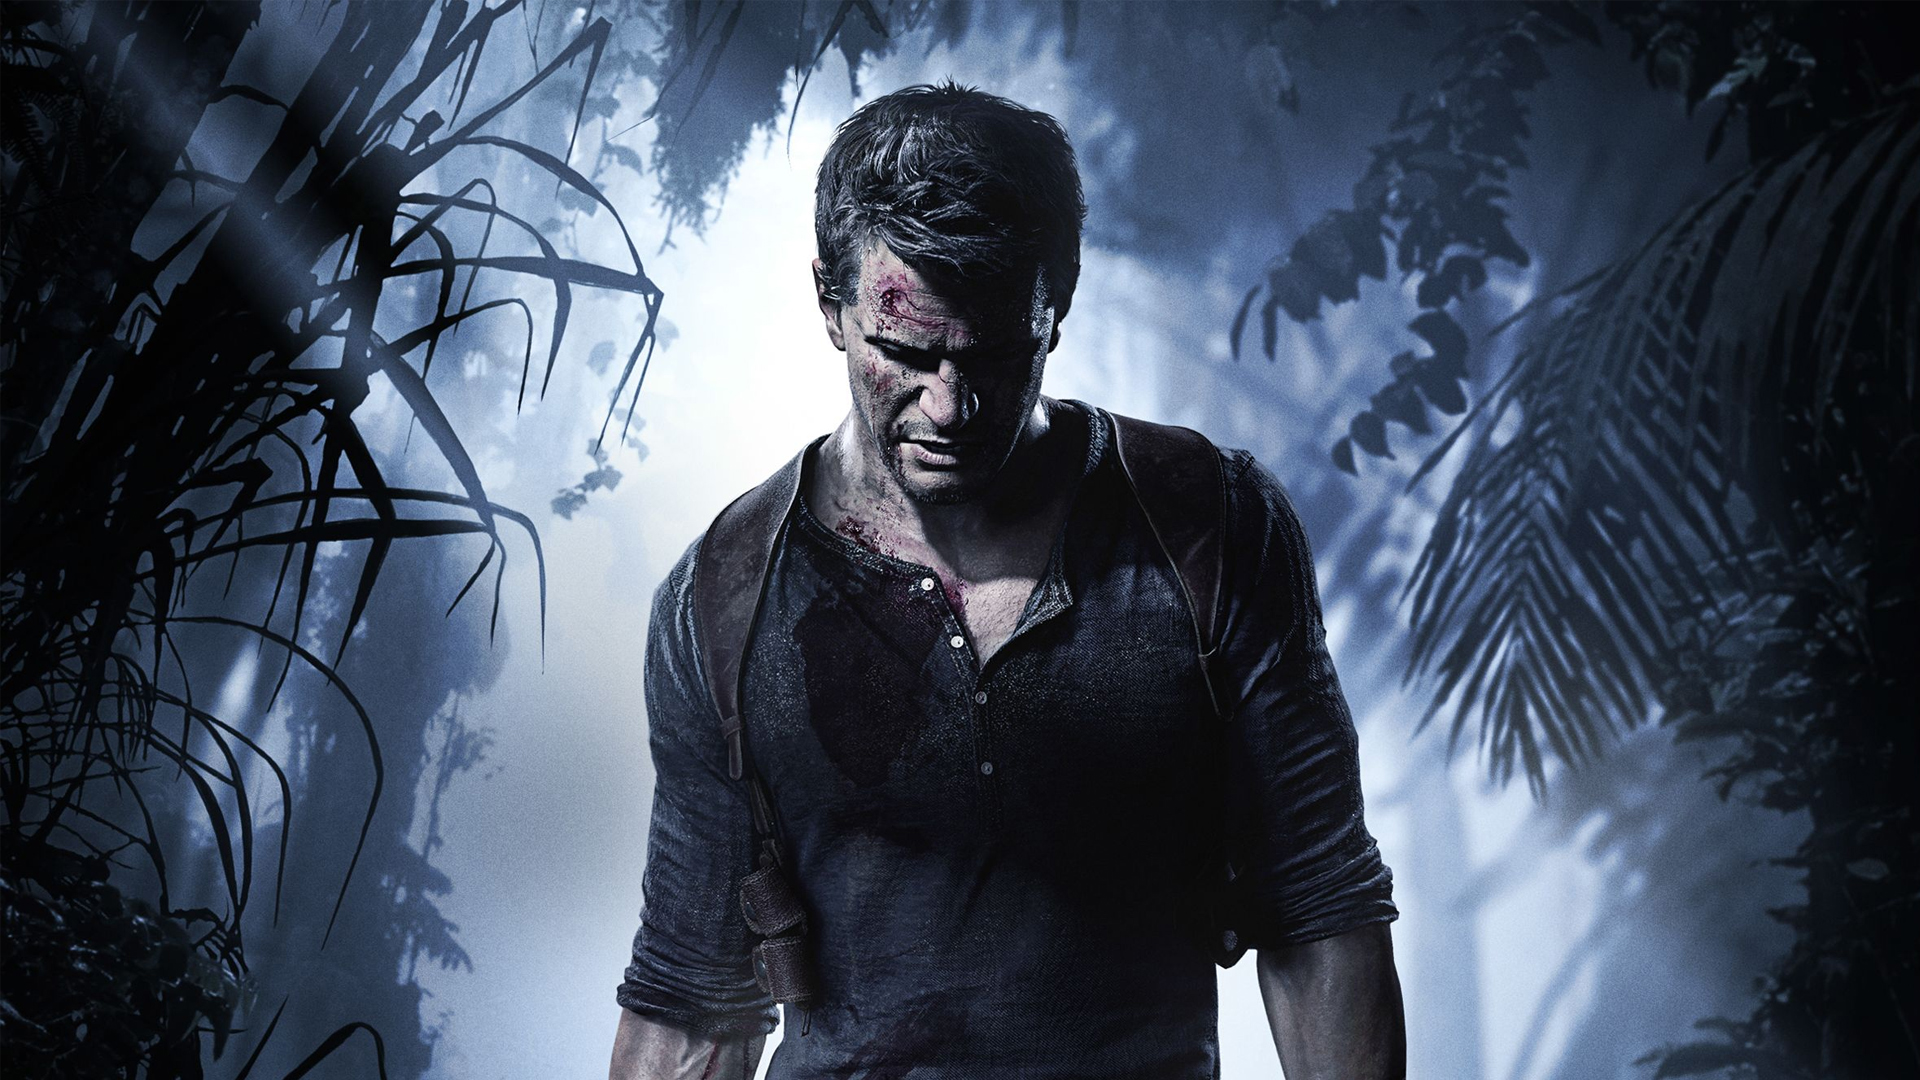 uncharted 4 wallpaper phone